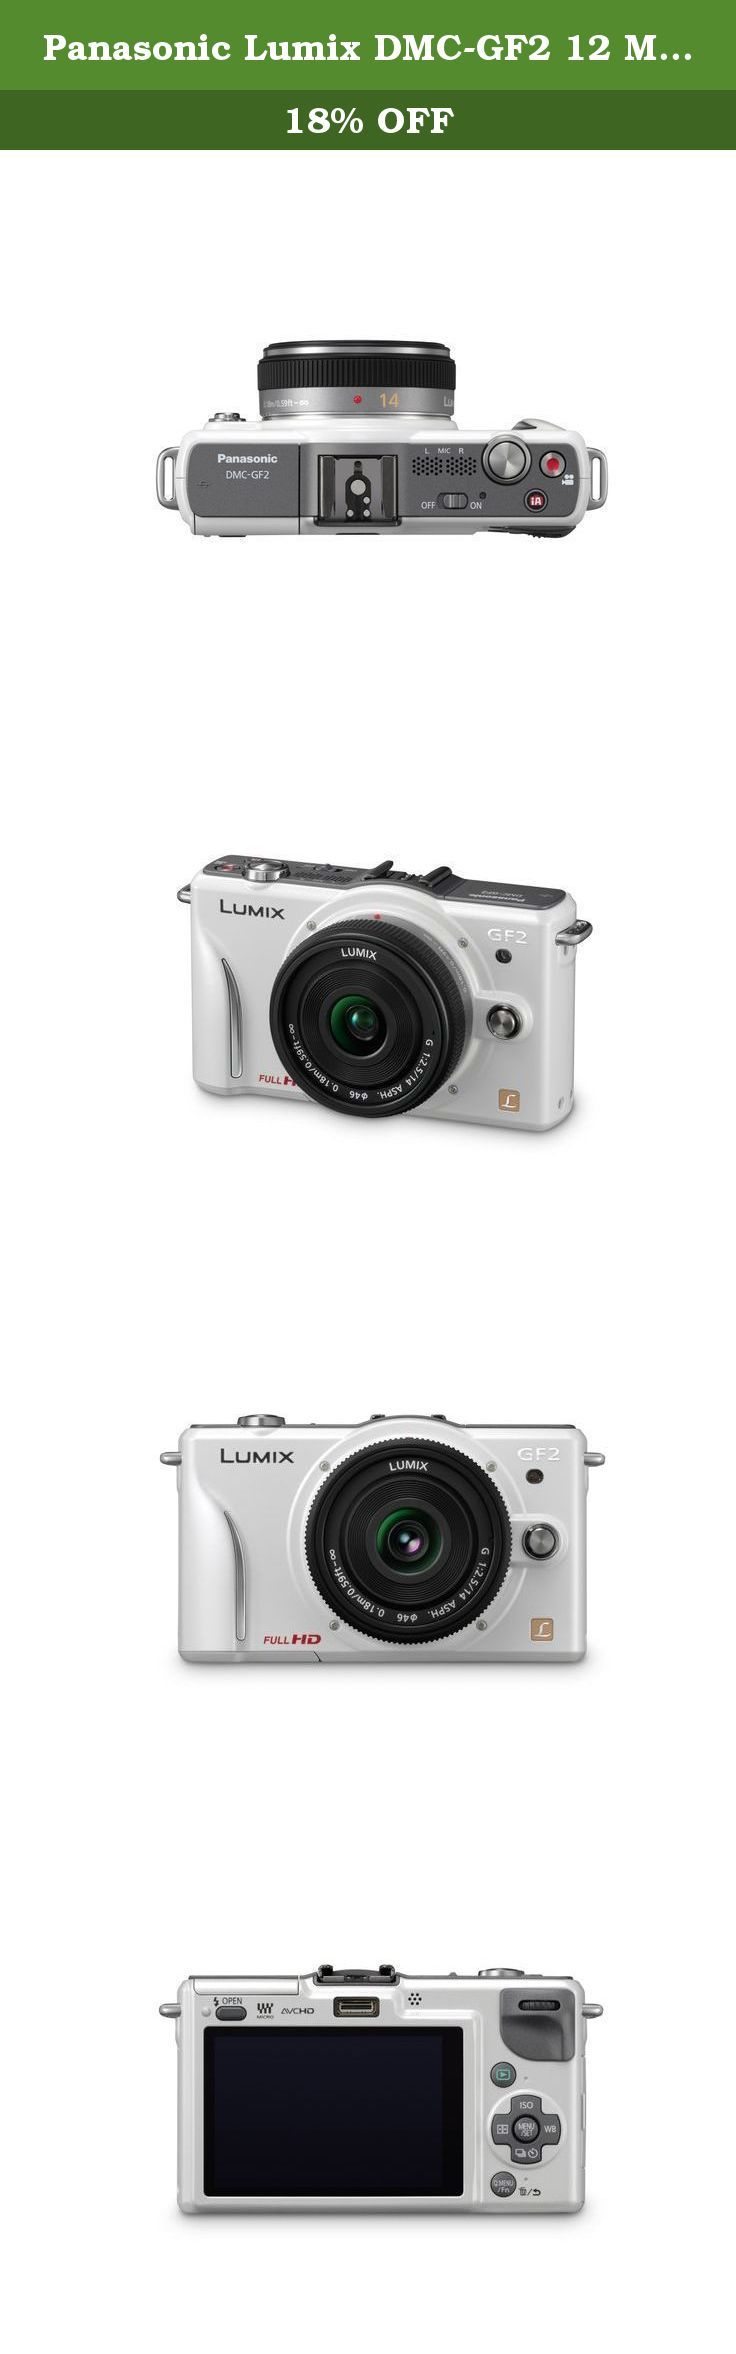 Panasonic Lumix DMC-GF2 12 MP Micro Four-Thirds Mirrorless Digital Camera with 3.0-Inch Touch-Screen LCD and 14mm f/2.5 G Aspherical Lens (White). The LUMIX GF2 is Panasonics signature DSL Micro Compact system camera in its mirrorless line-up. It's the smallest and lightest model offered by Panasonic, while still offering the superb image quality expected from LUMIX. Comparing to the GF1, its predecessor, the GF2 has been reduced approximately 19% in size and approximately 7% in weight…